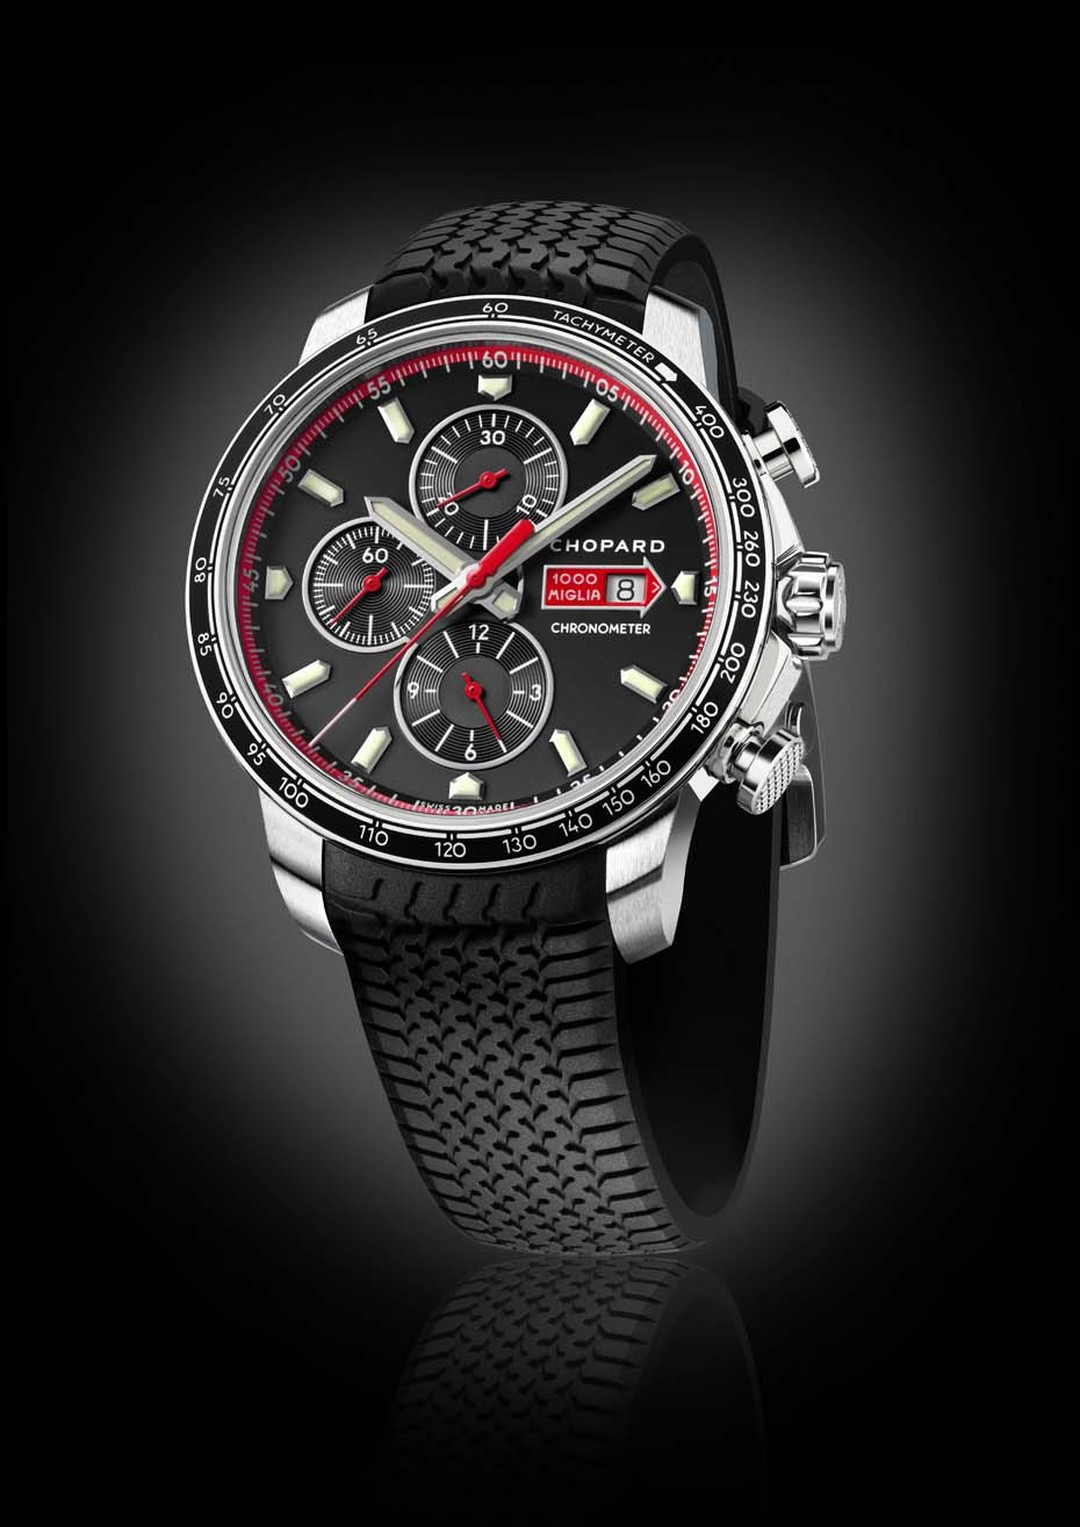 The new Chopard Mille Miglia GTS Chronograph celebrates the brand's role as official timekeeper of the Mille Miglia classic car race, which takes place every year from Brescia to Rome and back.